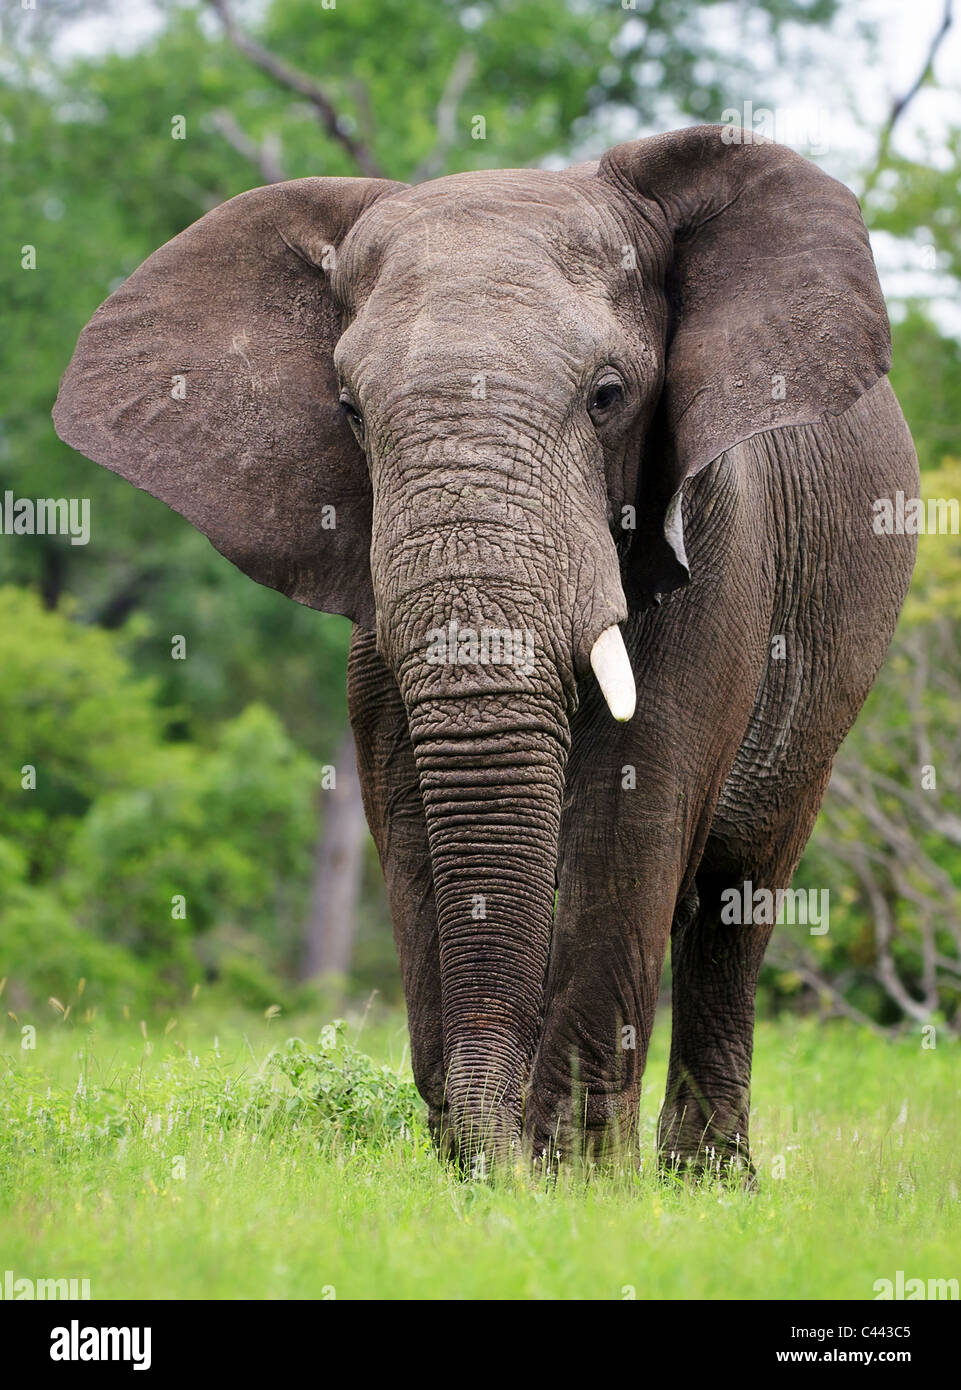 African Elephant walking on green grass -  Kruger National Park - South Africa - Stock Image